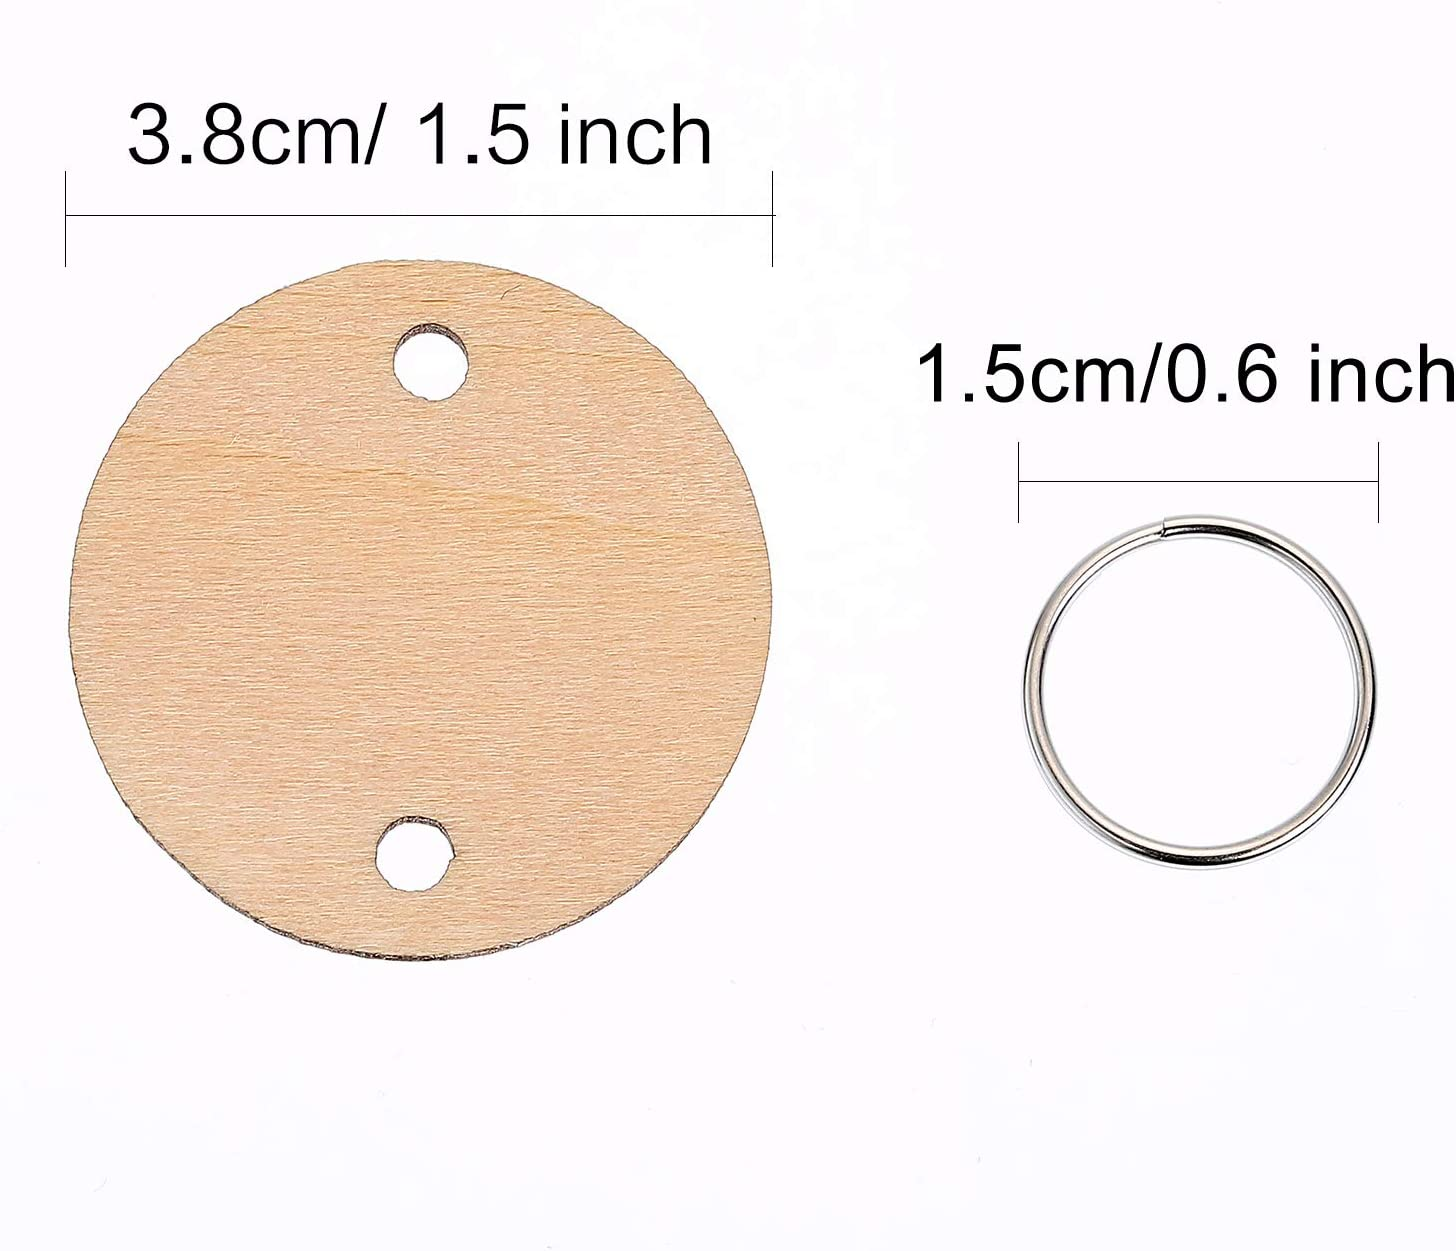 Bememo 100 Pieces Round Wooden Discs with Holes Birthday Board Tags and 100 Pieces 15 mm Rings for Arts and Crafts 3.8CM